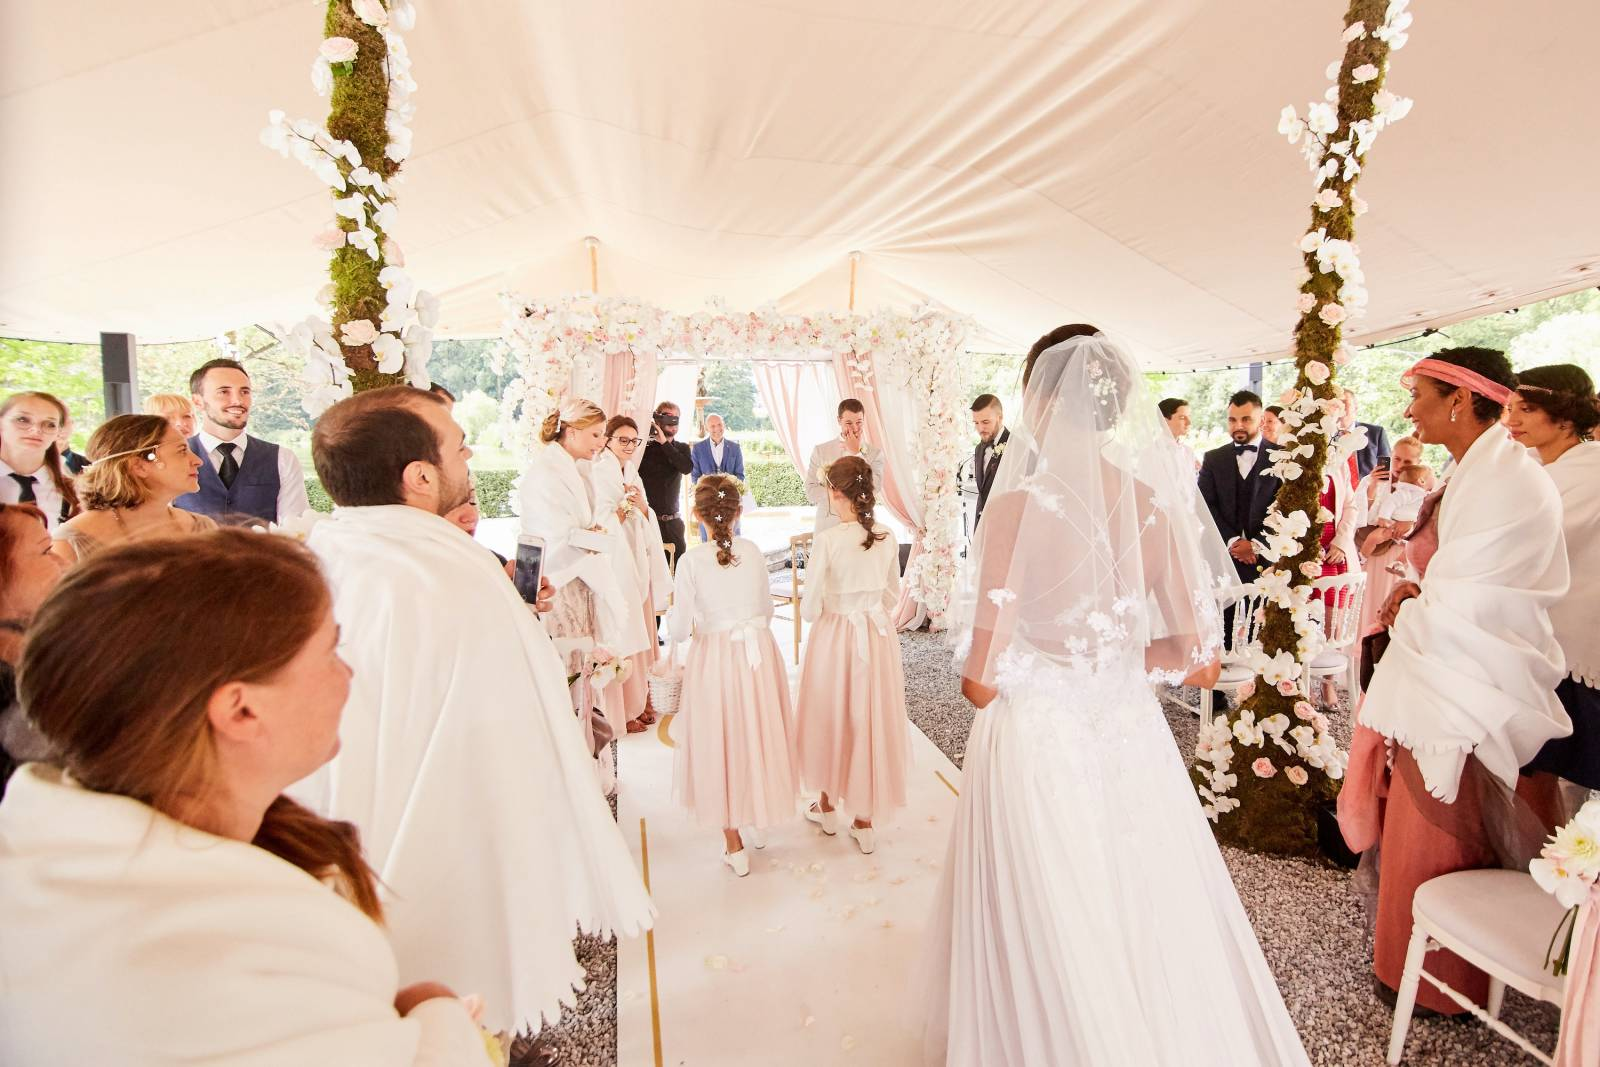 Be Your Guest - Wedding Planner - House of Weddings10-CEREMONIE-2018-Philippe Nieus